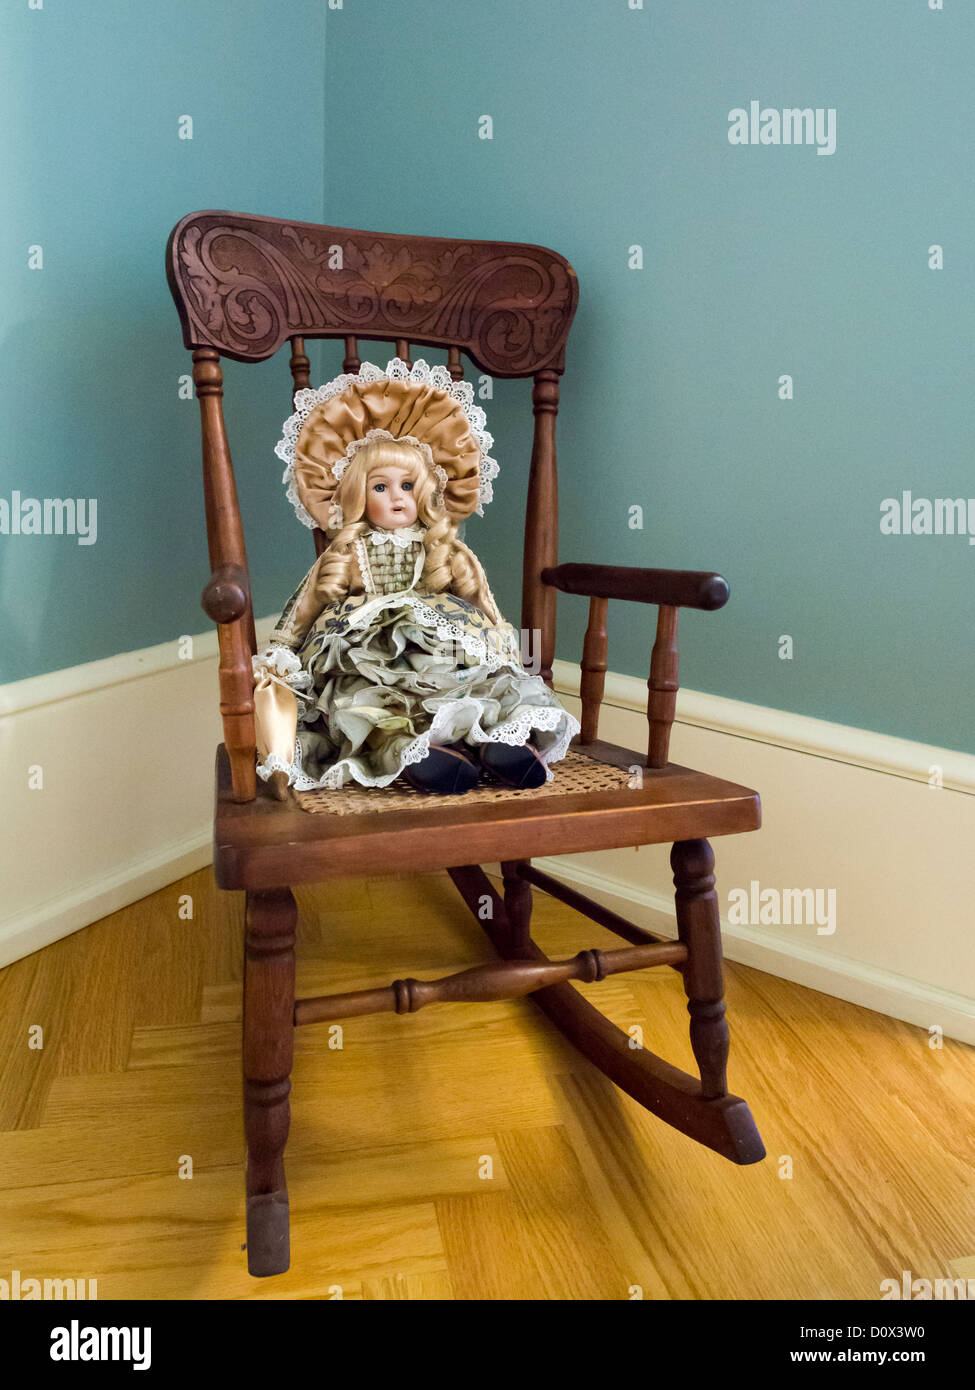 antique rocking chair price guide land of nod doll | furniture